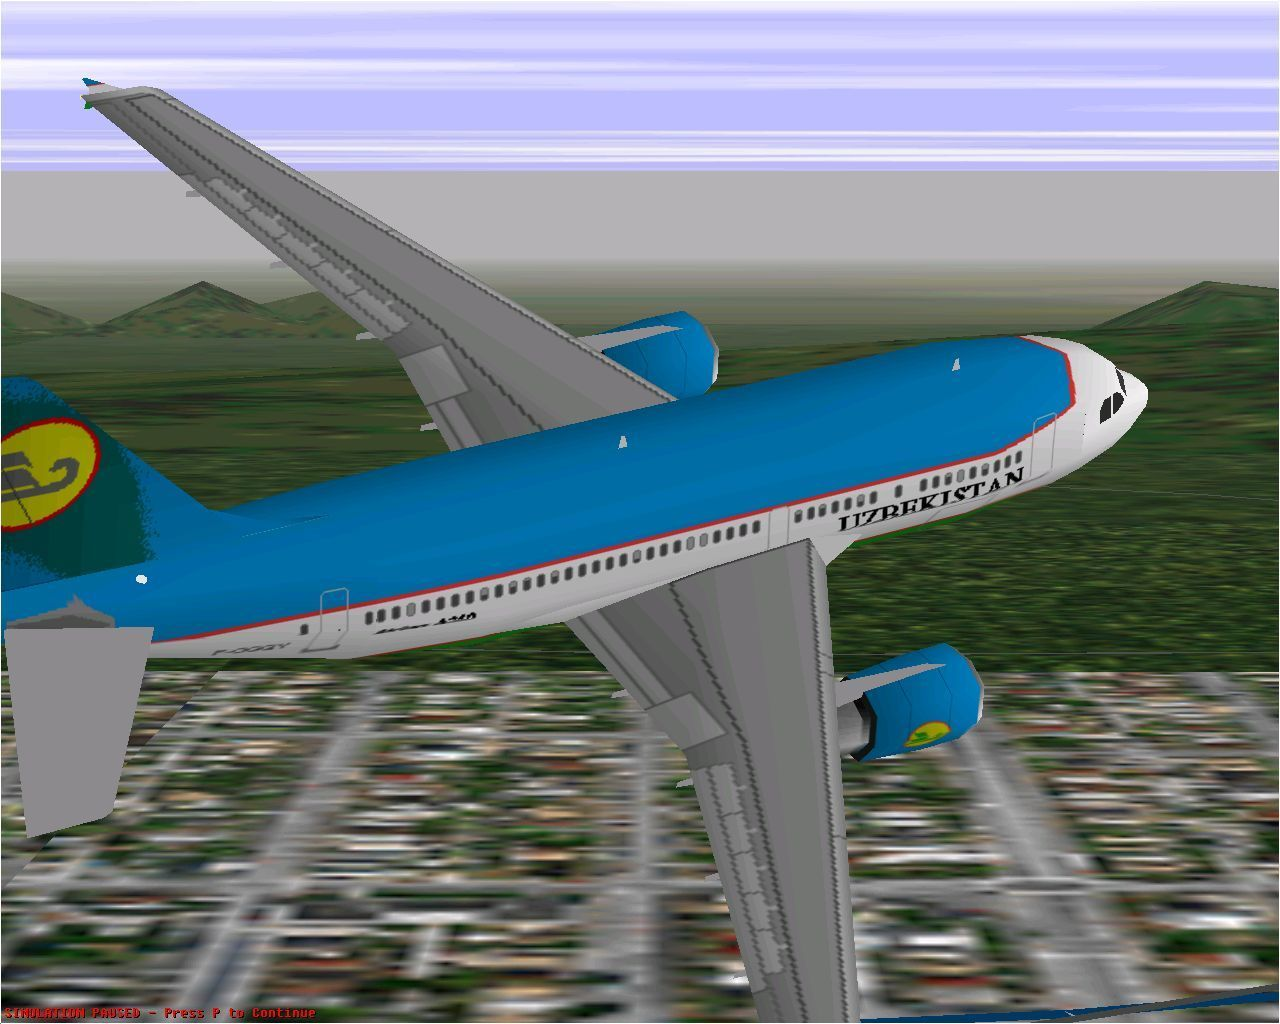 Airbus 2000: Special Edition Windows Uzbekistan's Airbus A310-324 flying in Microsoft Flight Simulator 98